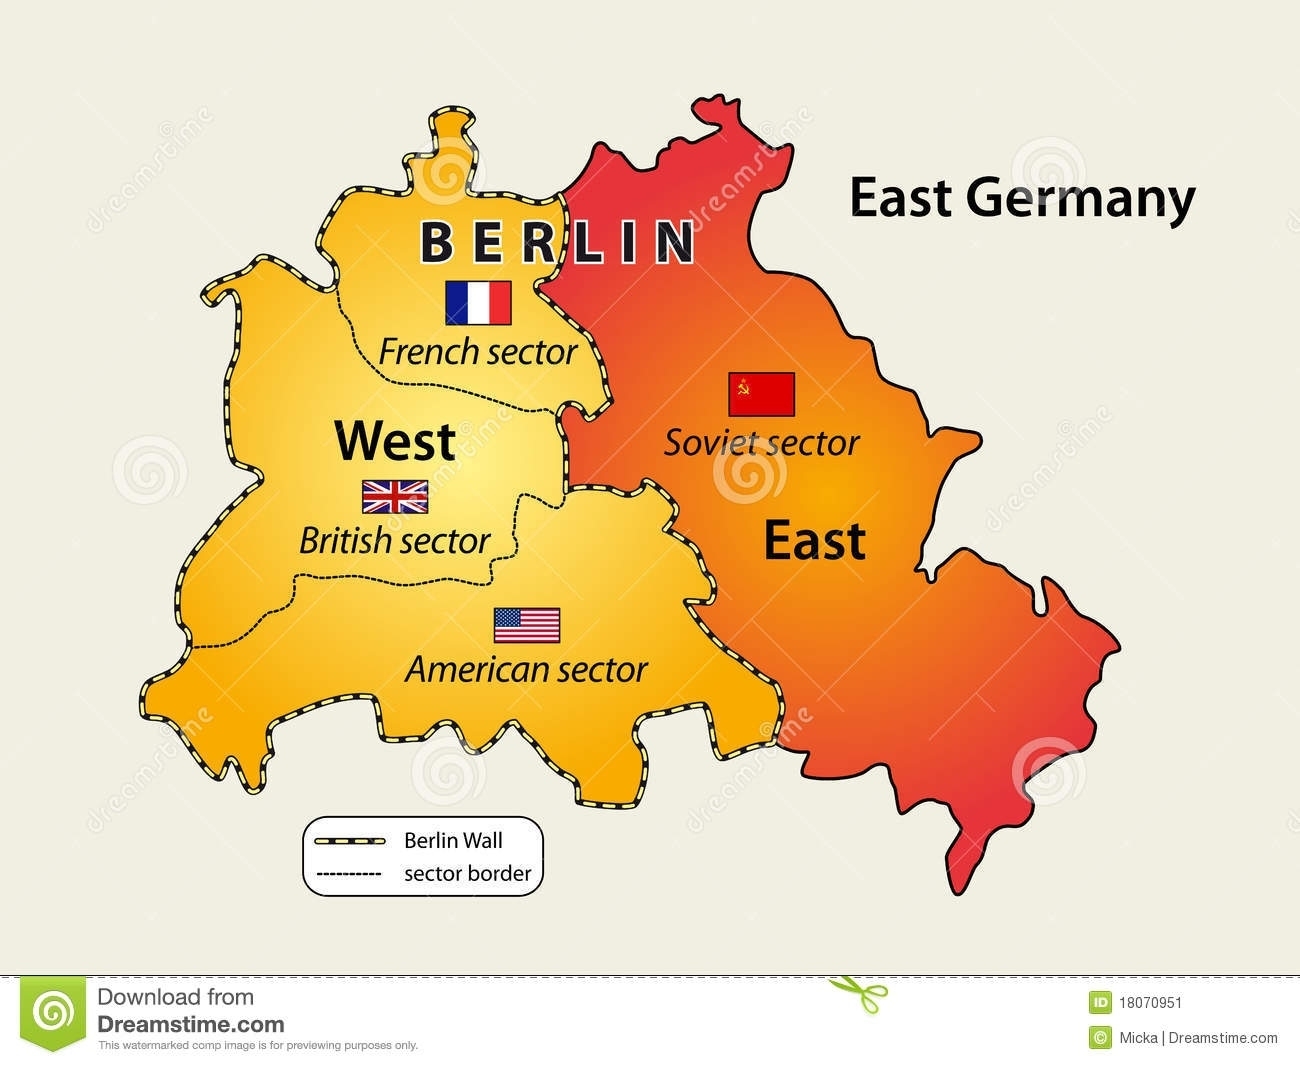 Divided Berlin Stock Vector. Illustration Of East, German - 18070951 with regard to Map Of Divided Germany During The Cold War